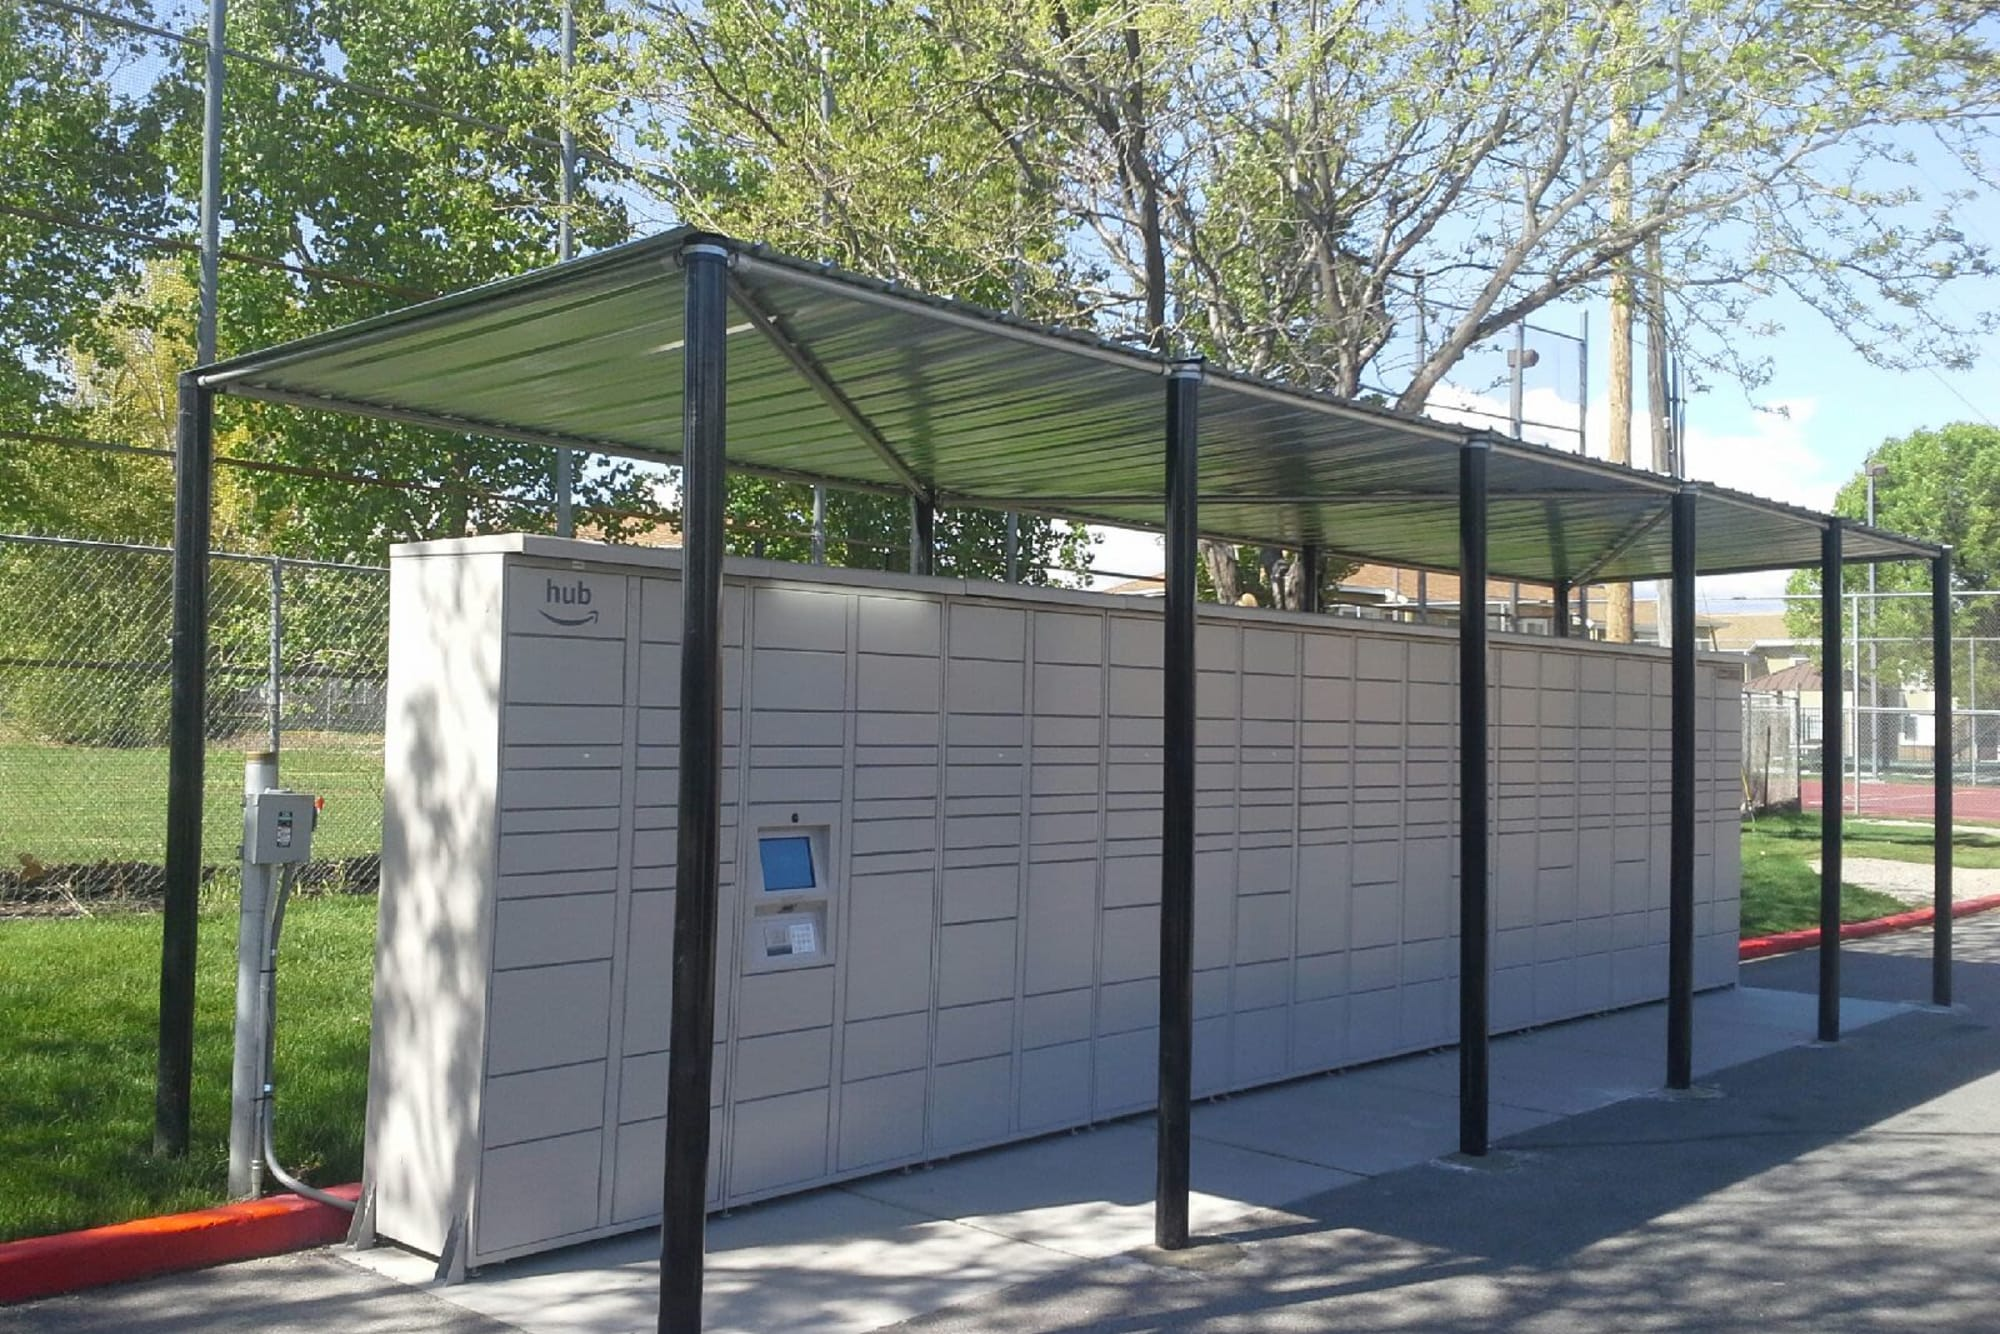 Covered outdoor package lockers at Callaway Apartments in Taylorsville, Utah